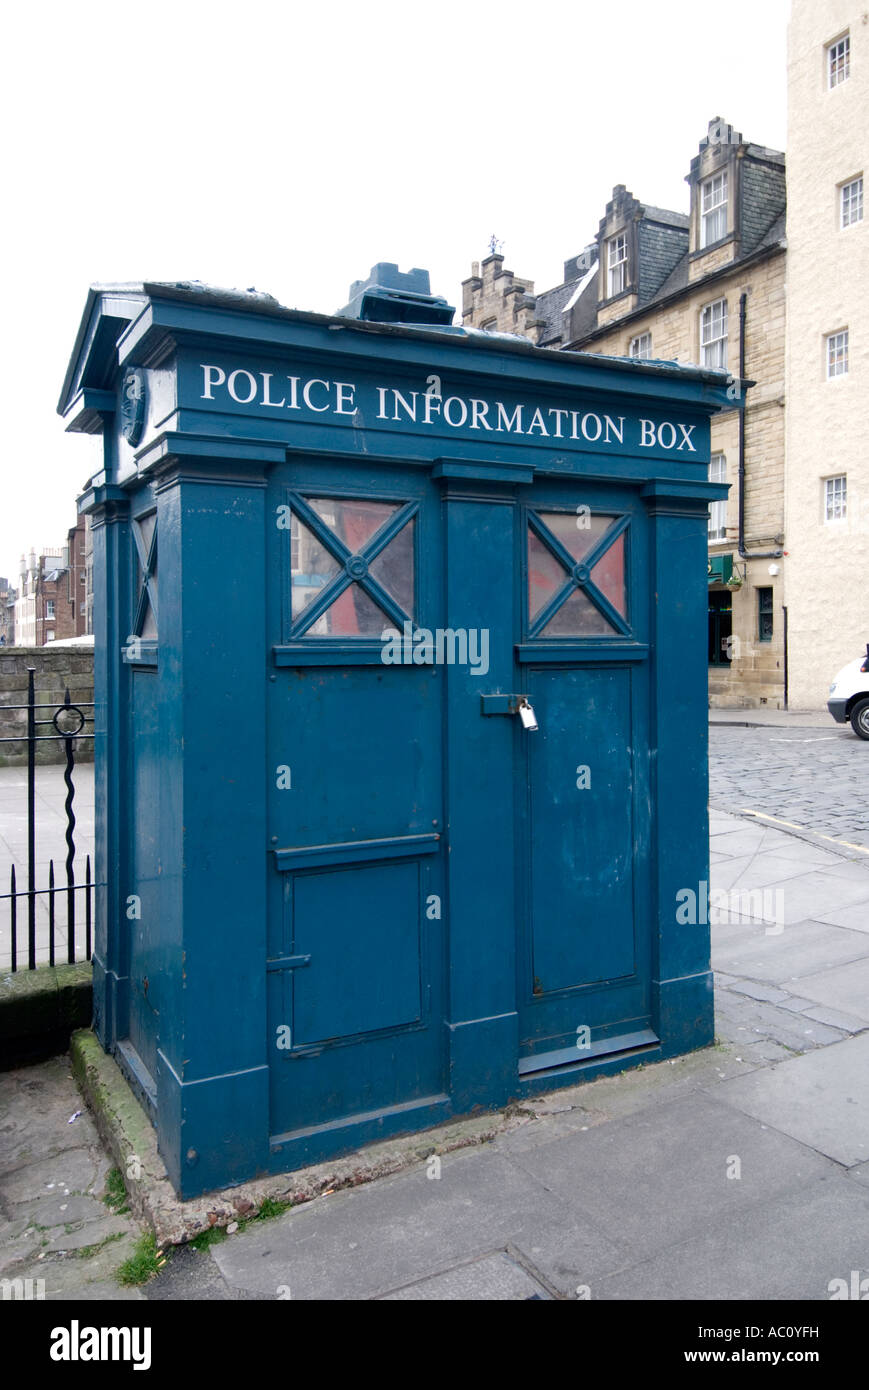 shopping on the grass market street in edinburgh with a blue police information box like the dr who tardis - Stock Image